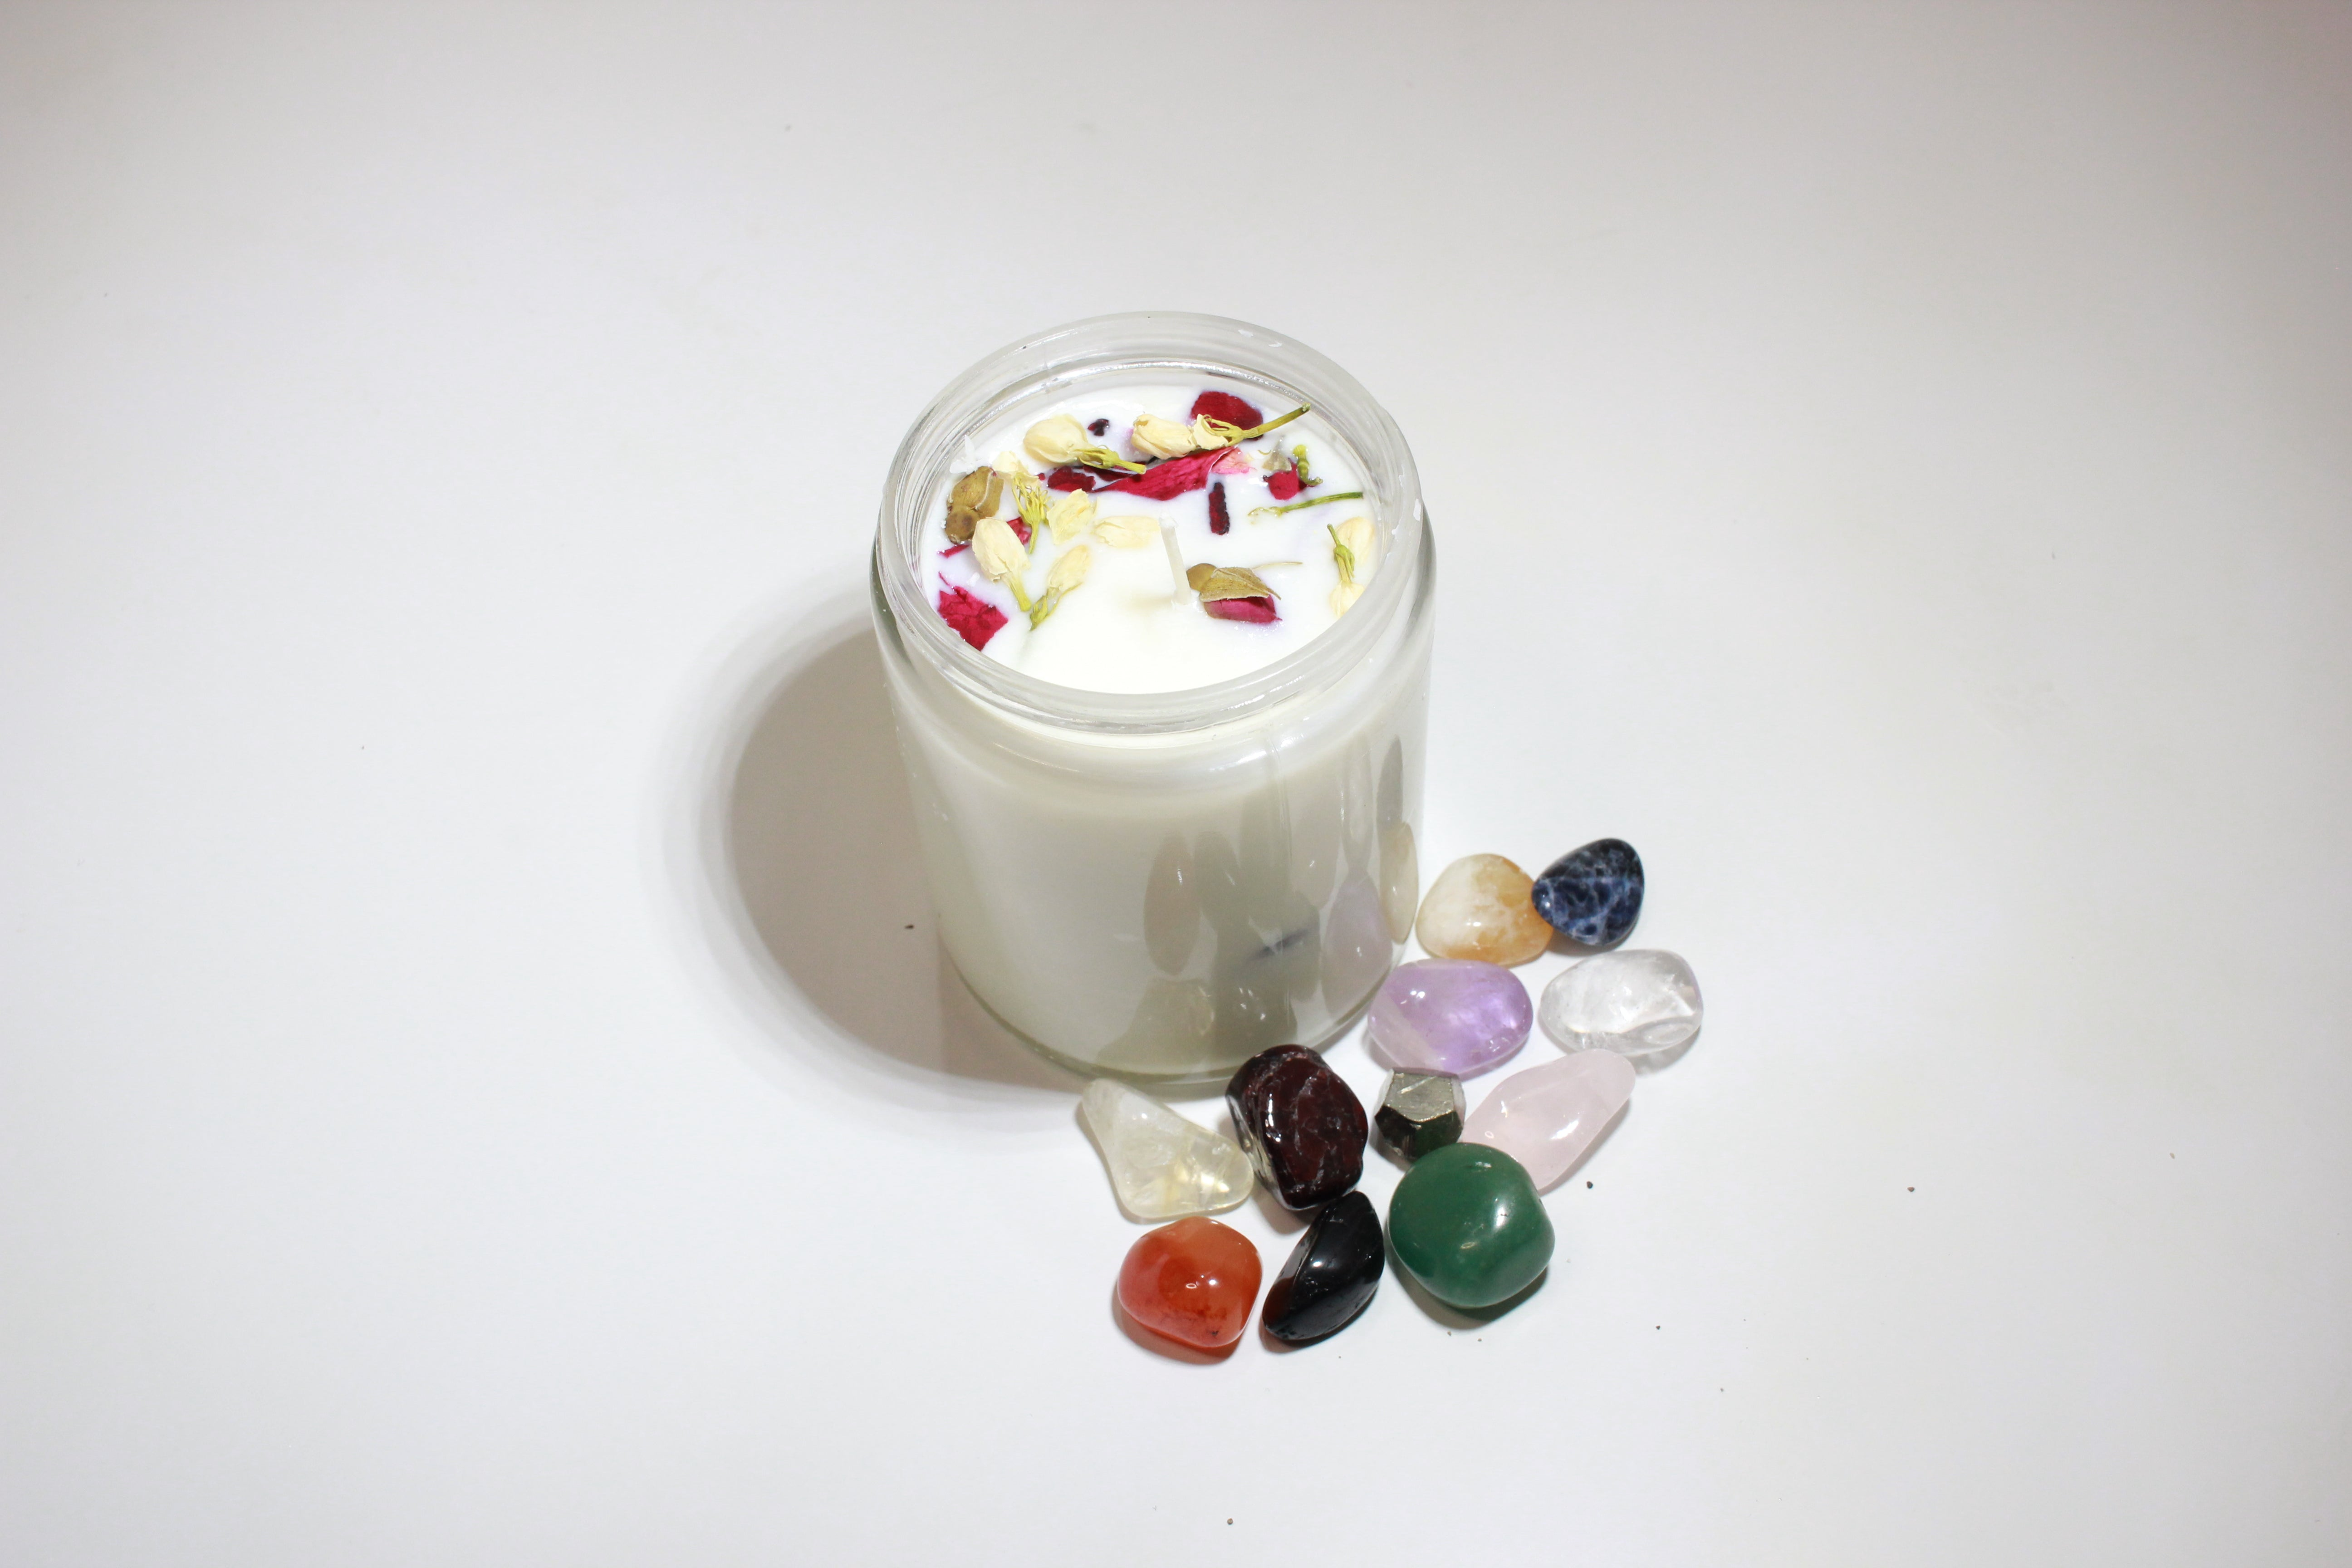 """I Am Love"" Affirmation Crystal Candle with Dried Herbs"